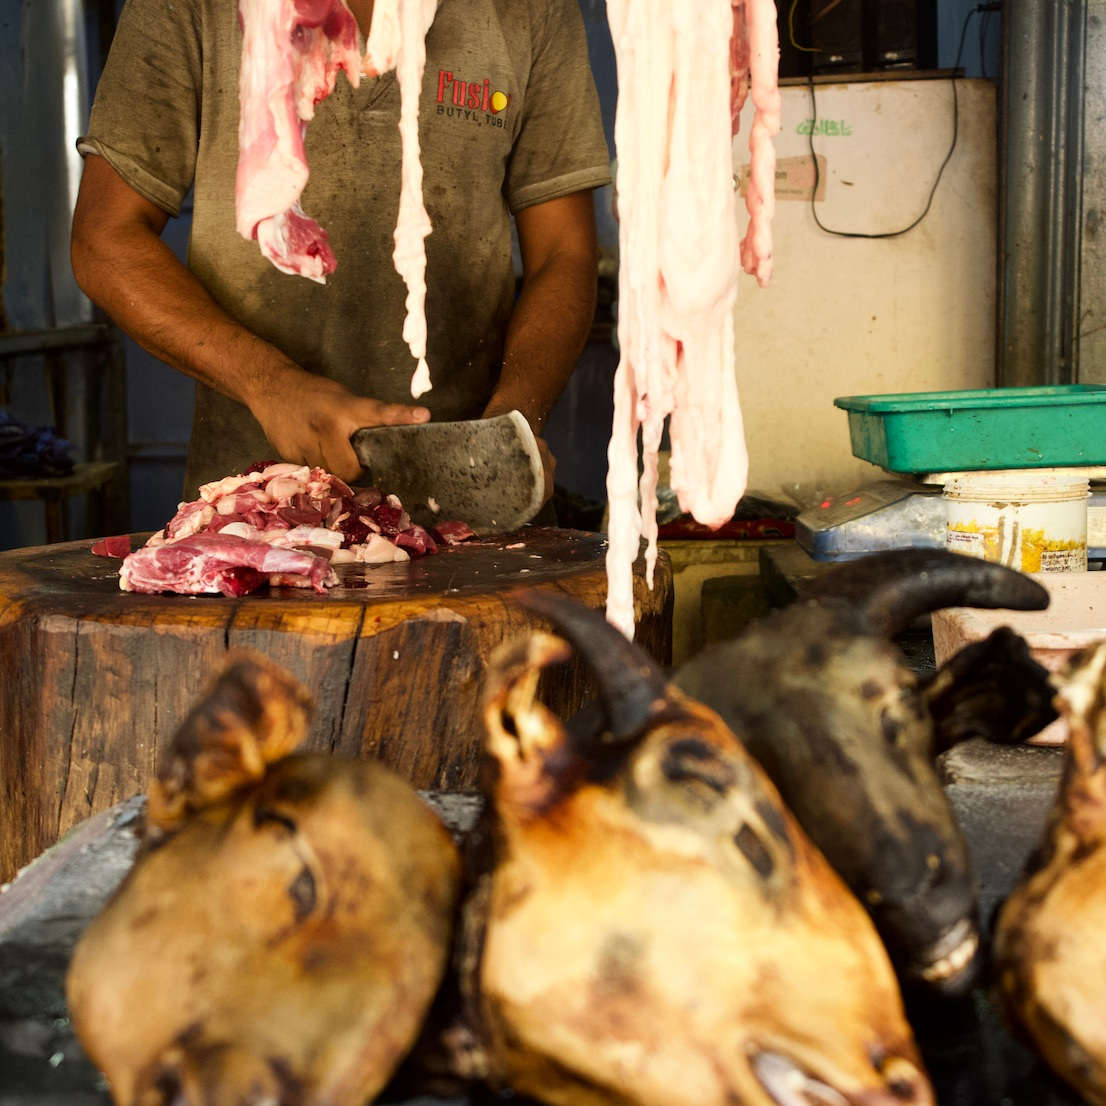 Decapitated goat heads at a butcher-shop.